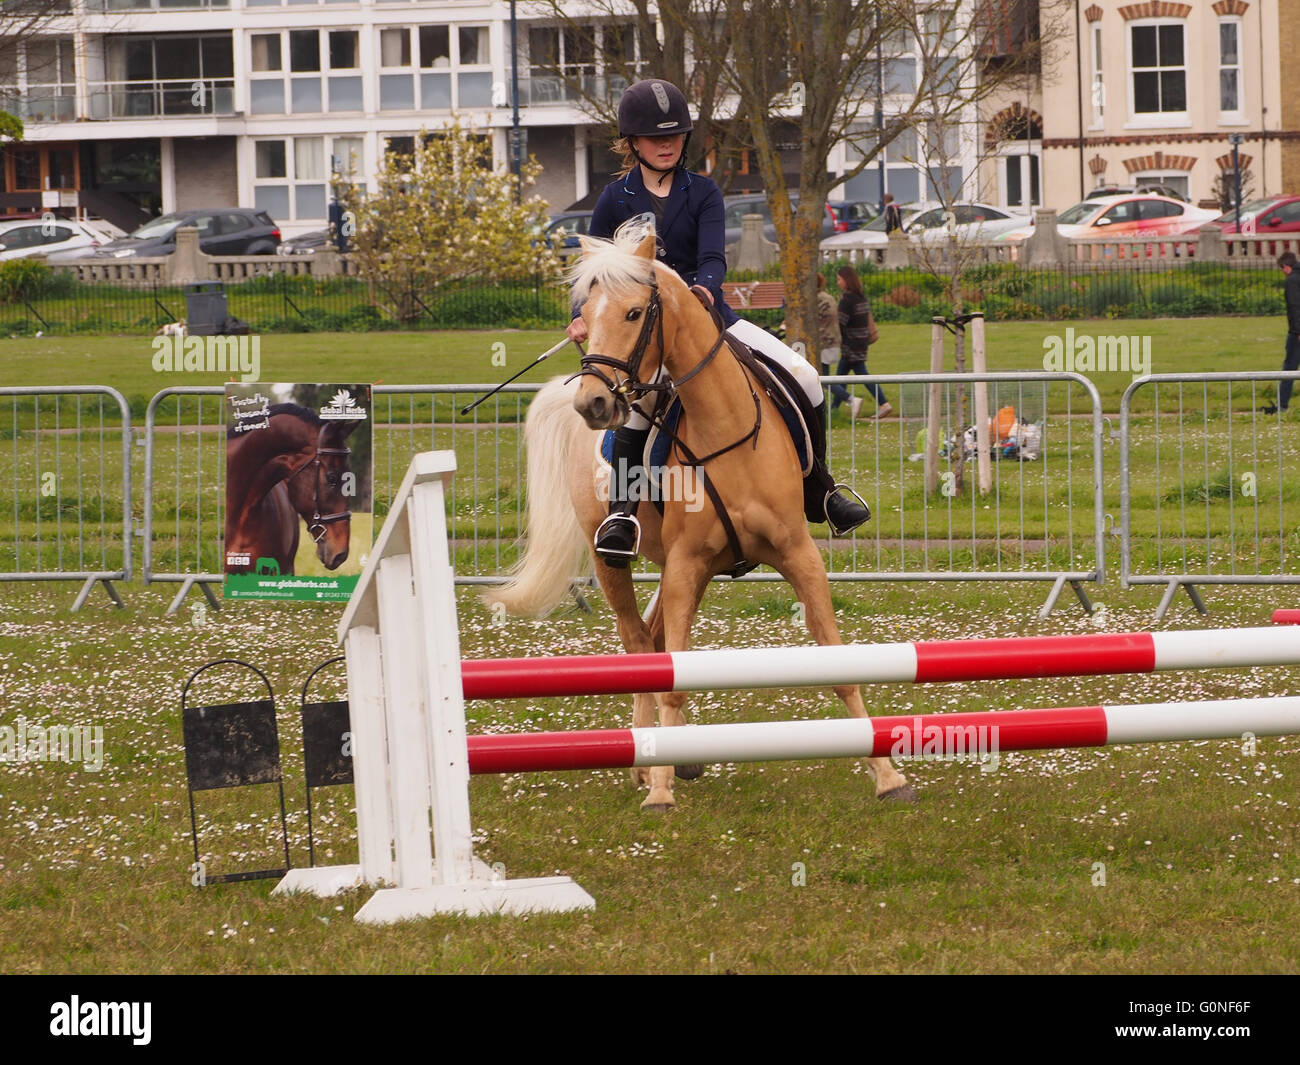 A horse refuses to jump a hurdle at a showjumping event. - Stock Image